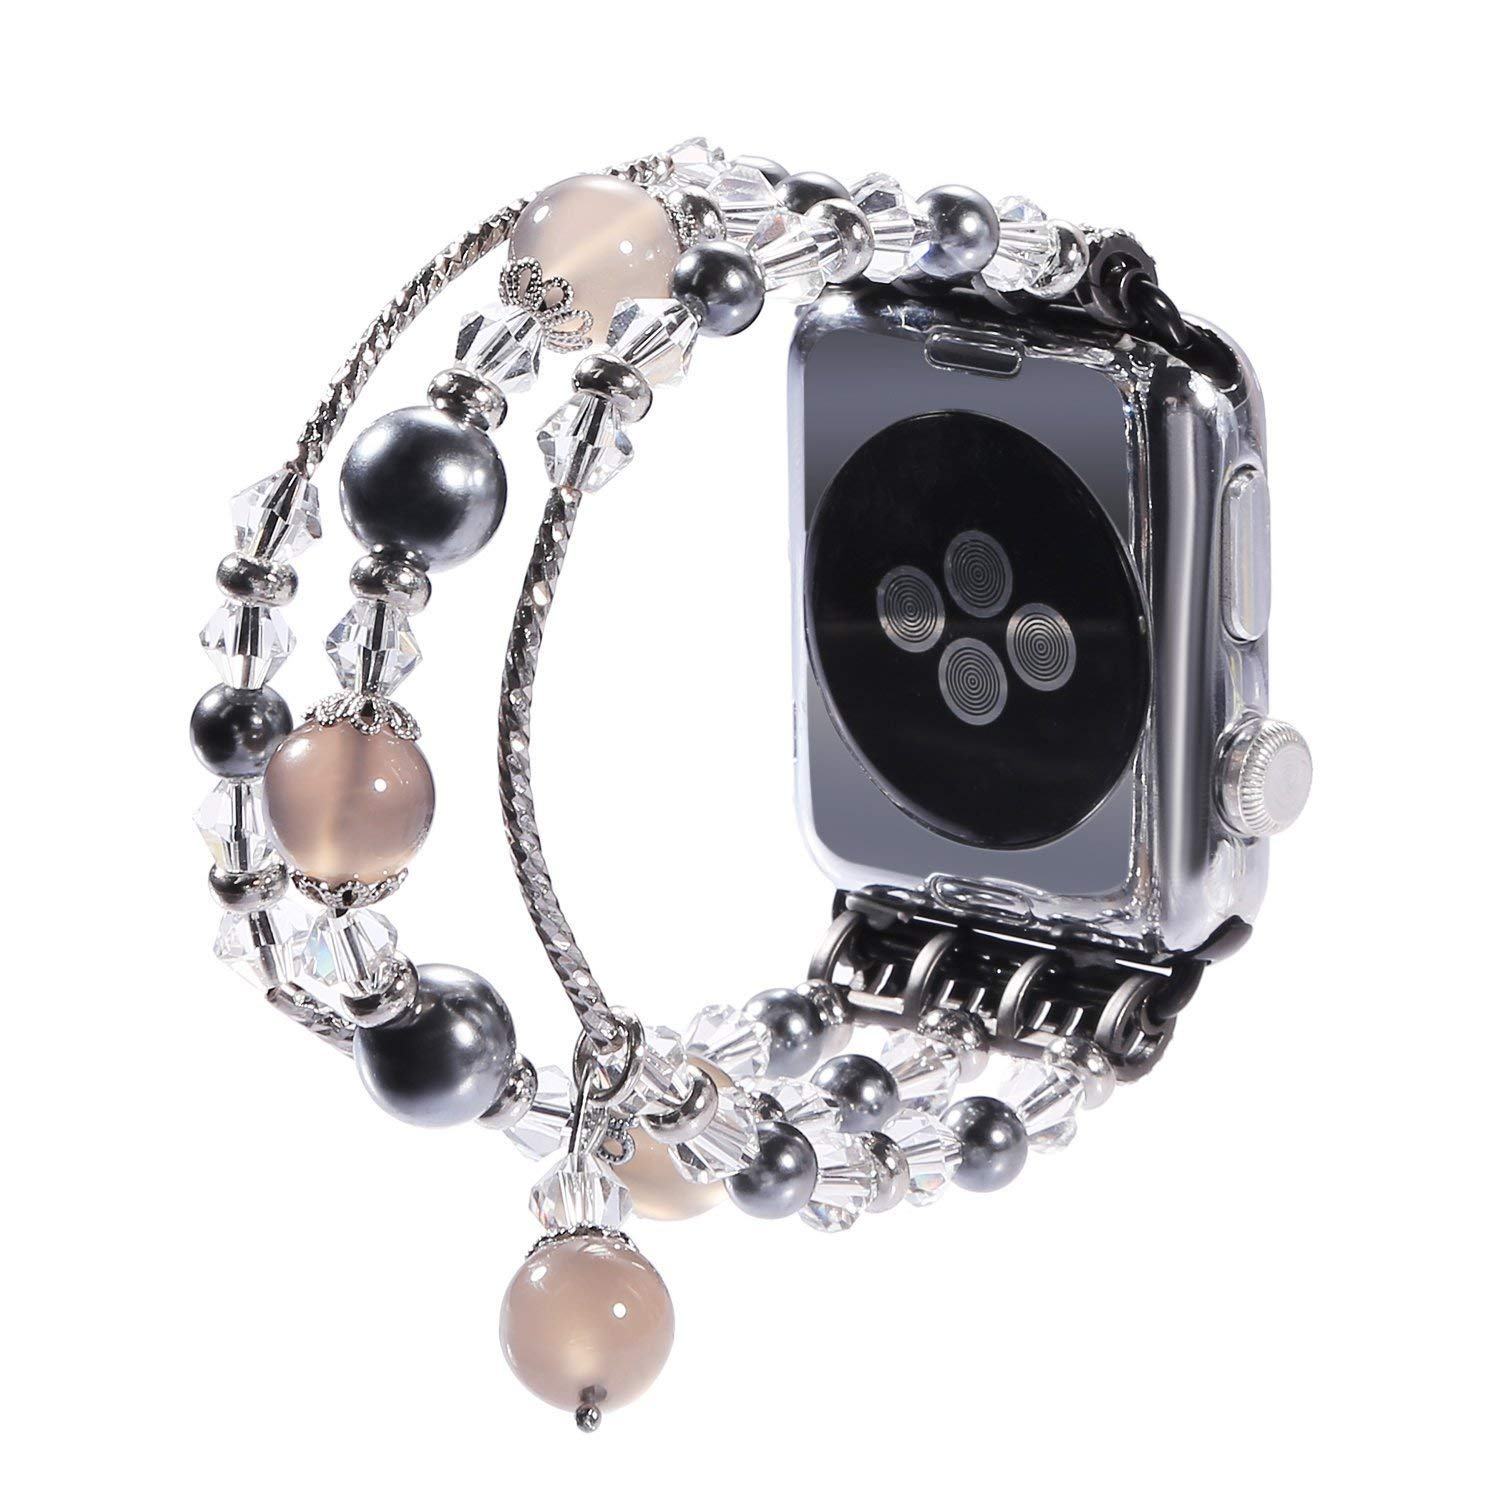 New Watch Band for Apple Watch Series 3, 2, 1, Bingkers Luxury Handmade Pearl Agate and Elastic Stretch Crystal Bracelet Strap Wristband Women Apple Watch iWatch 3/2/1 Band (Greay, 42mm)